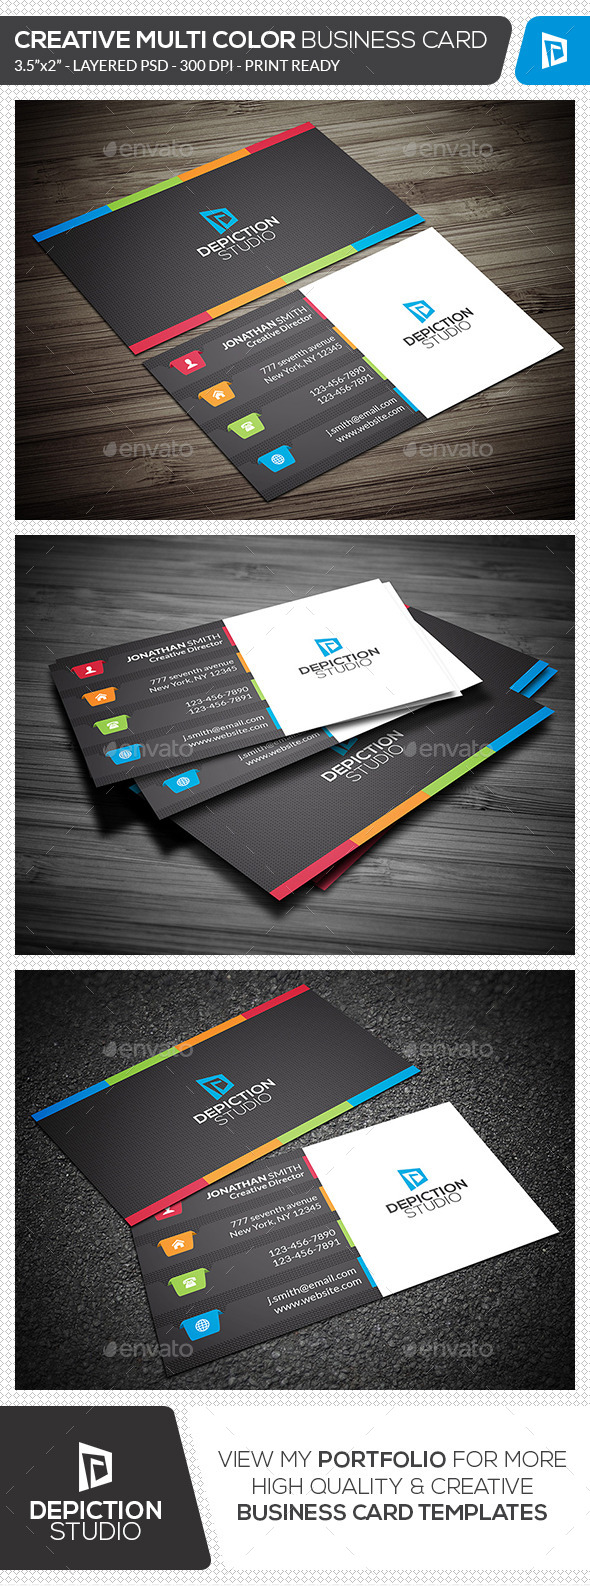 GraphicRiver Creative Multi Color Business Card 11770047